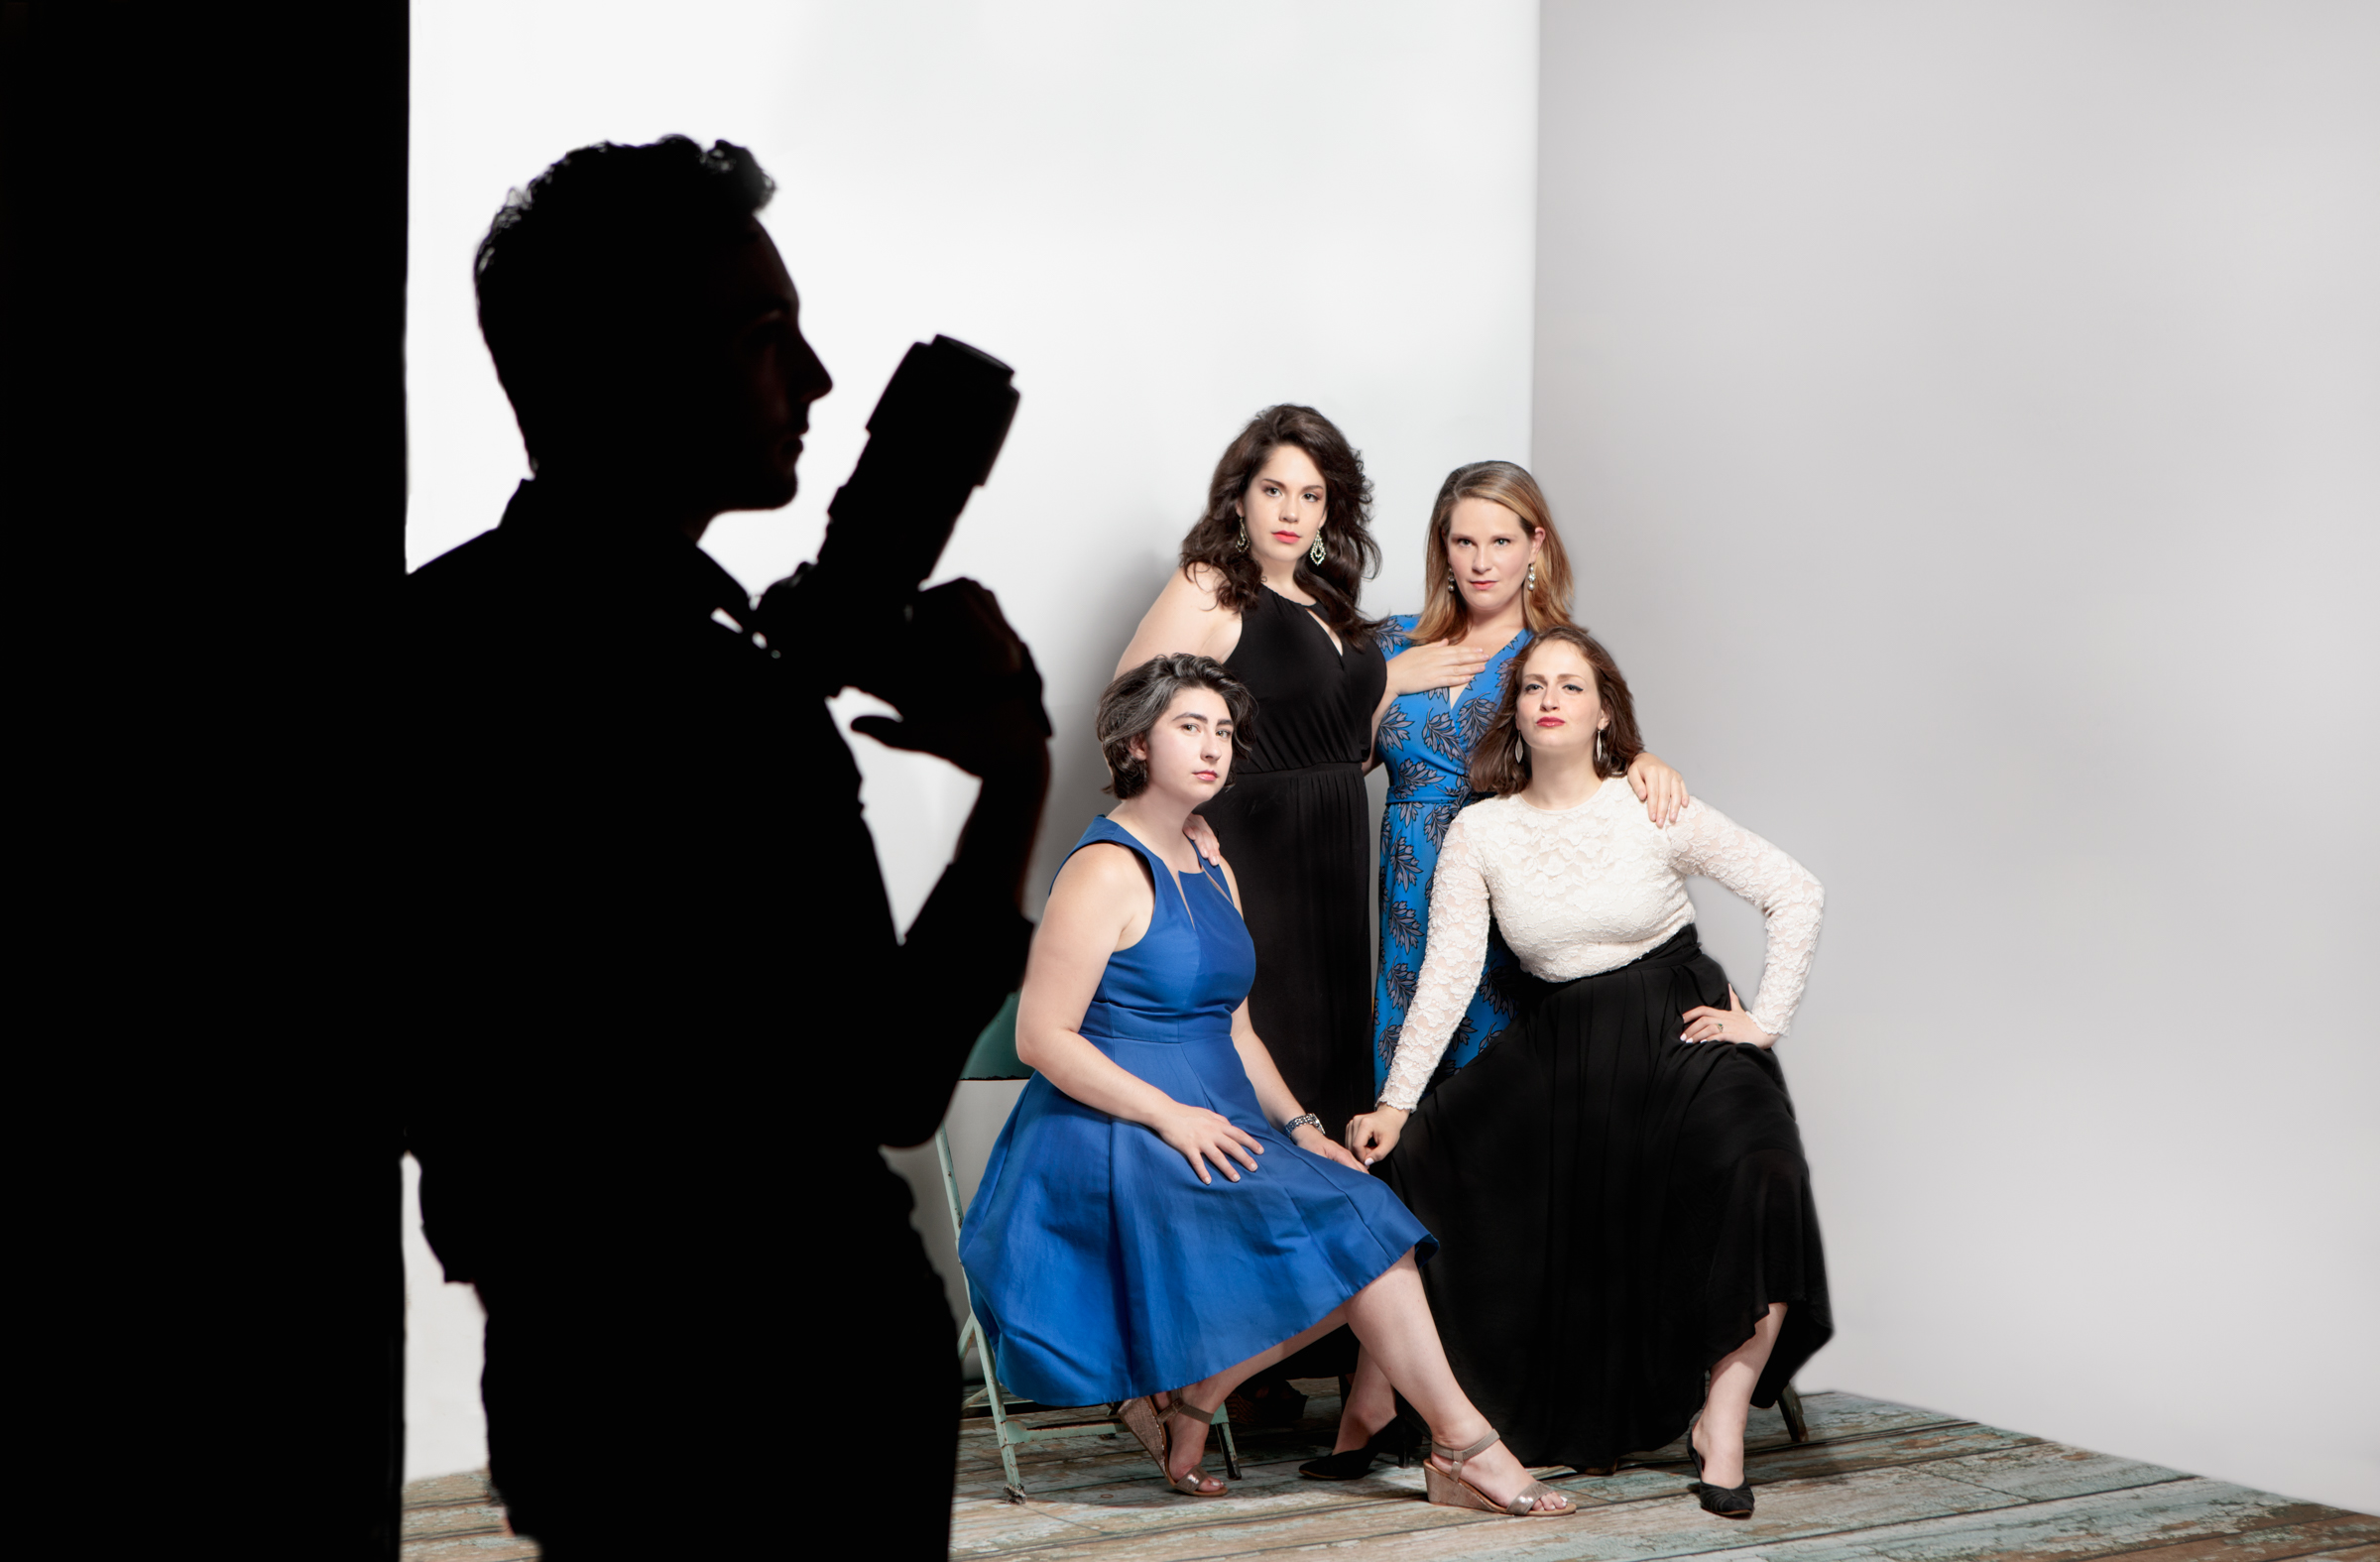 Ann Fogler with the Boston Opera Collaborative Colleagues at  Don Giovanni  marketing photoshoot.   August 2018    Photo credit: Dan Busler